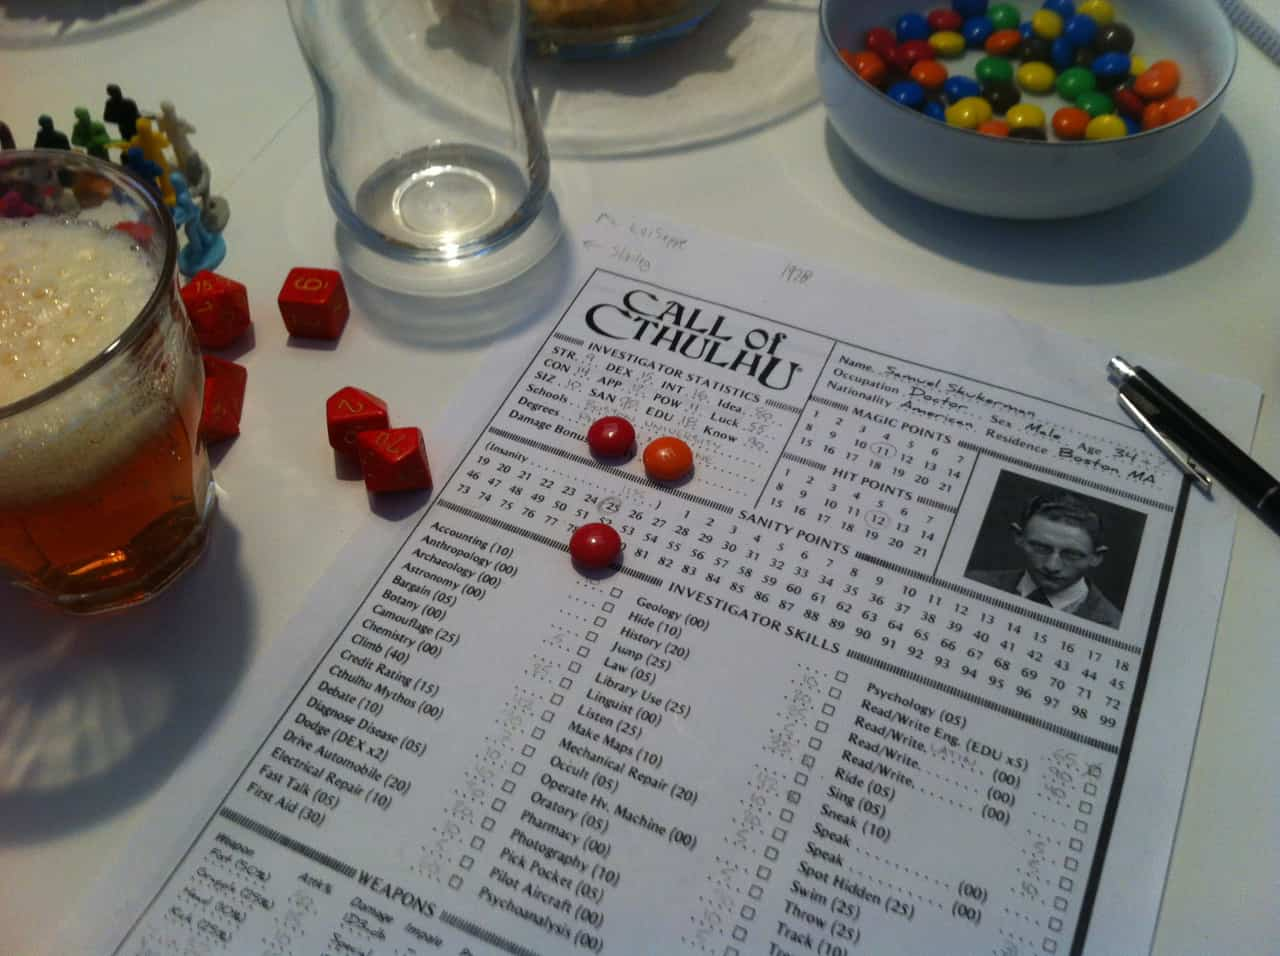 Call of Cthulhu character sheet and M&Ms